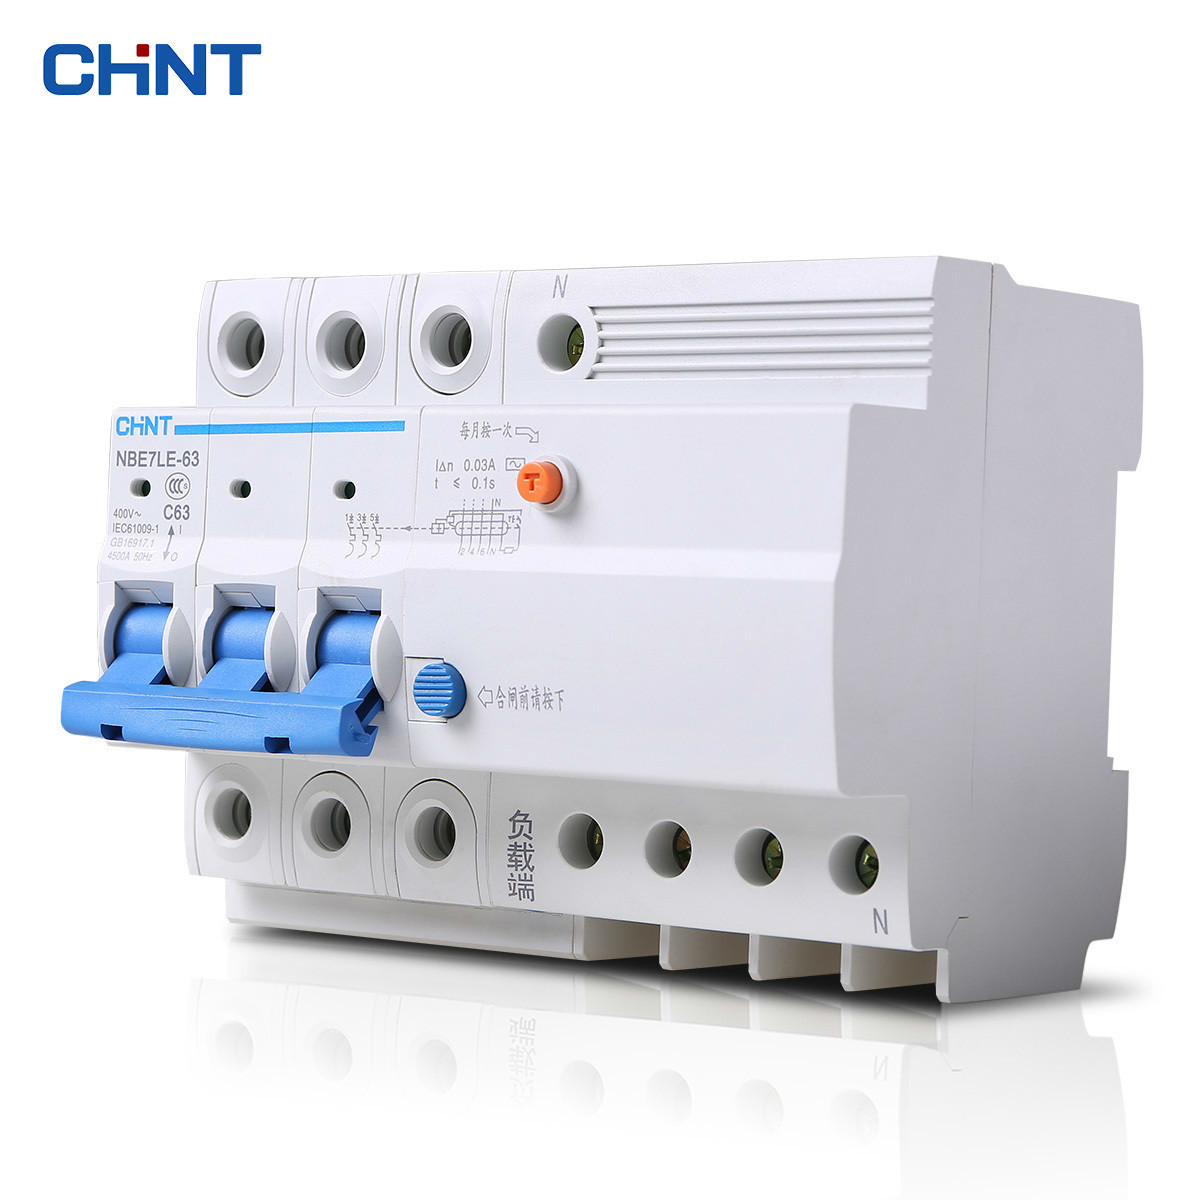 CHNT CHINT Leakage Protector NBE7LE 3P + N 16A 20A 25A 32A 40A 63A Small Circuit Breaker Air Switch kinetics пилка для натуральных ногтей 180 180 white turtle